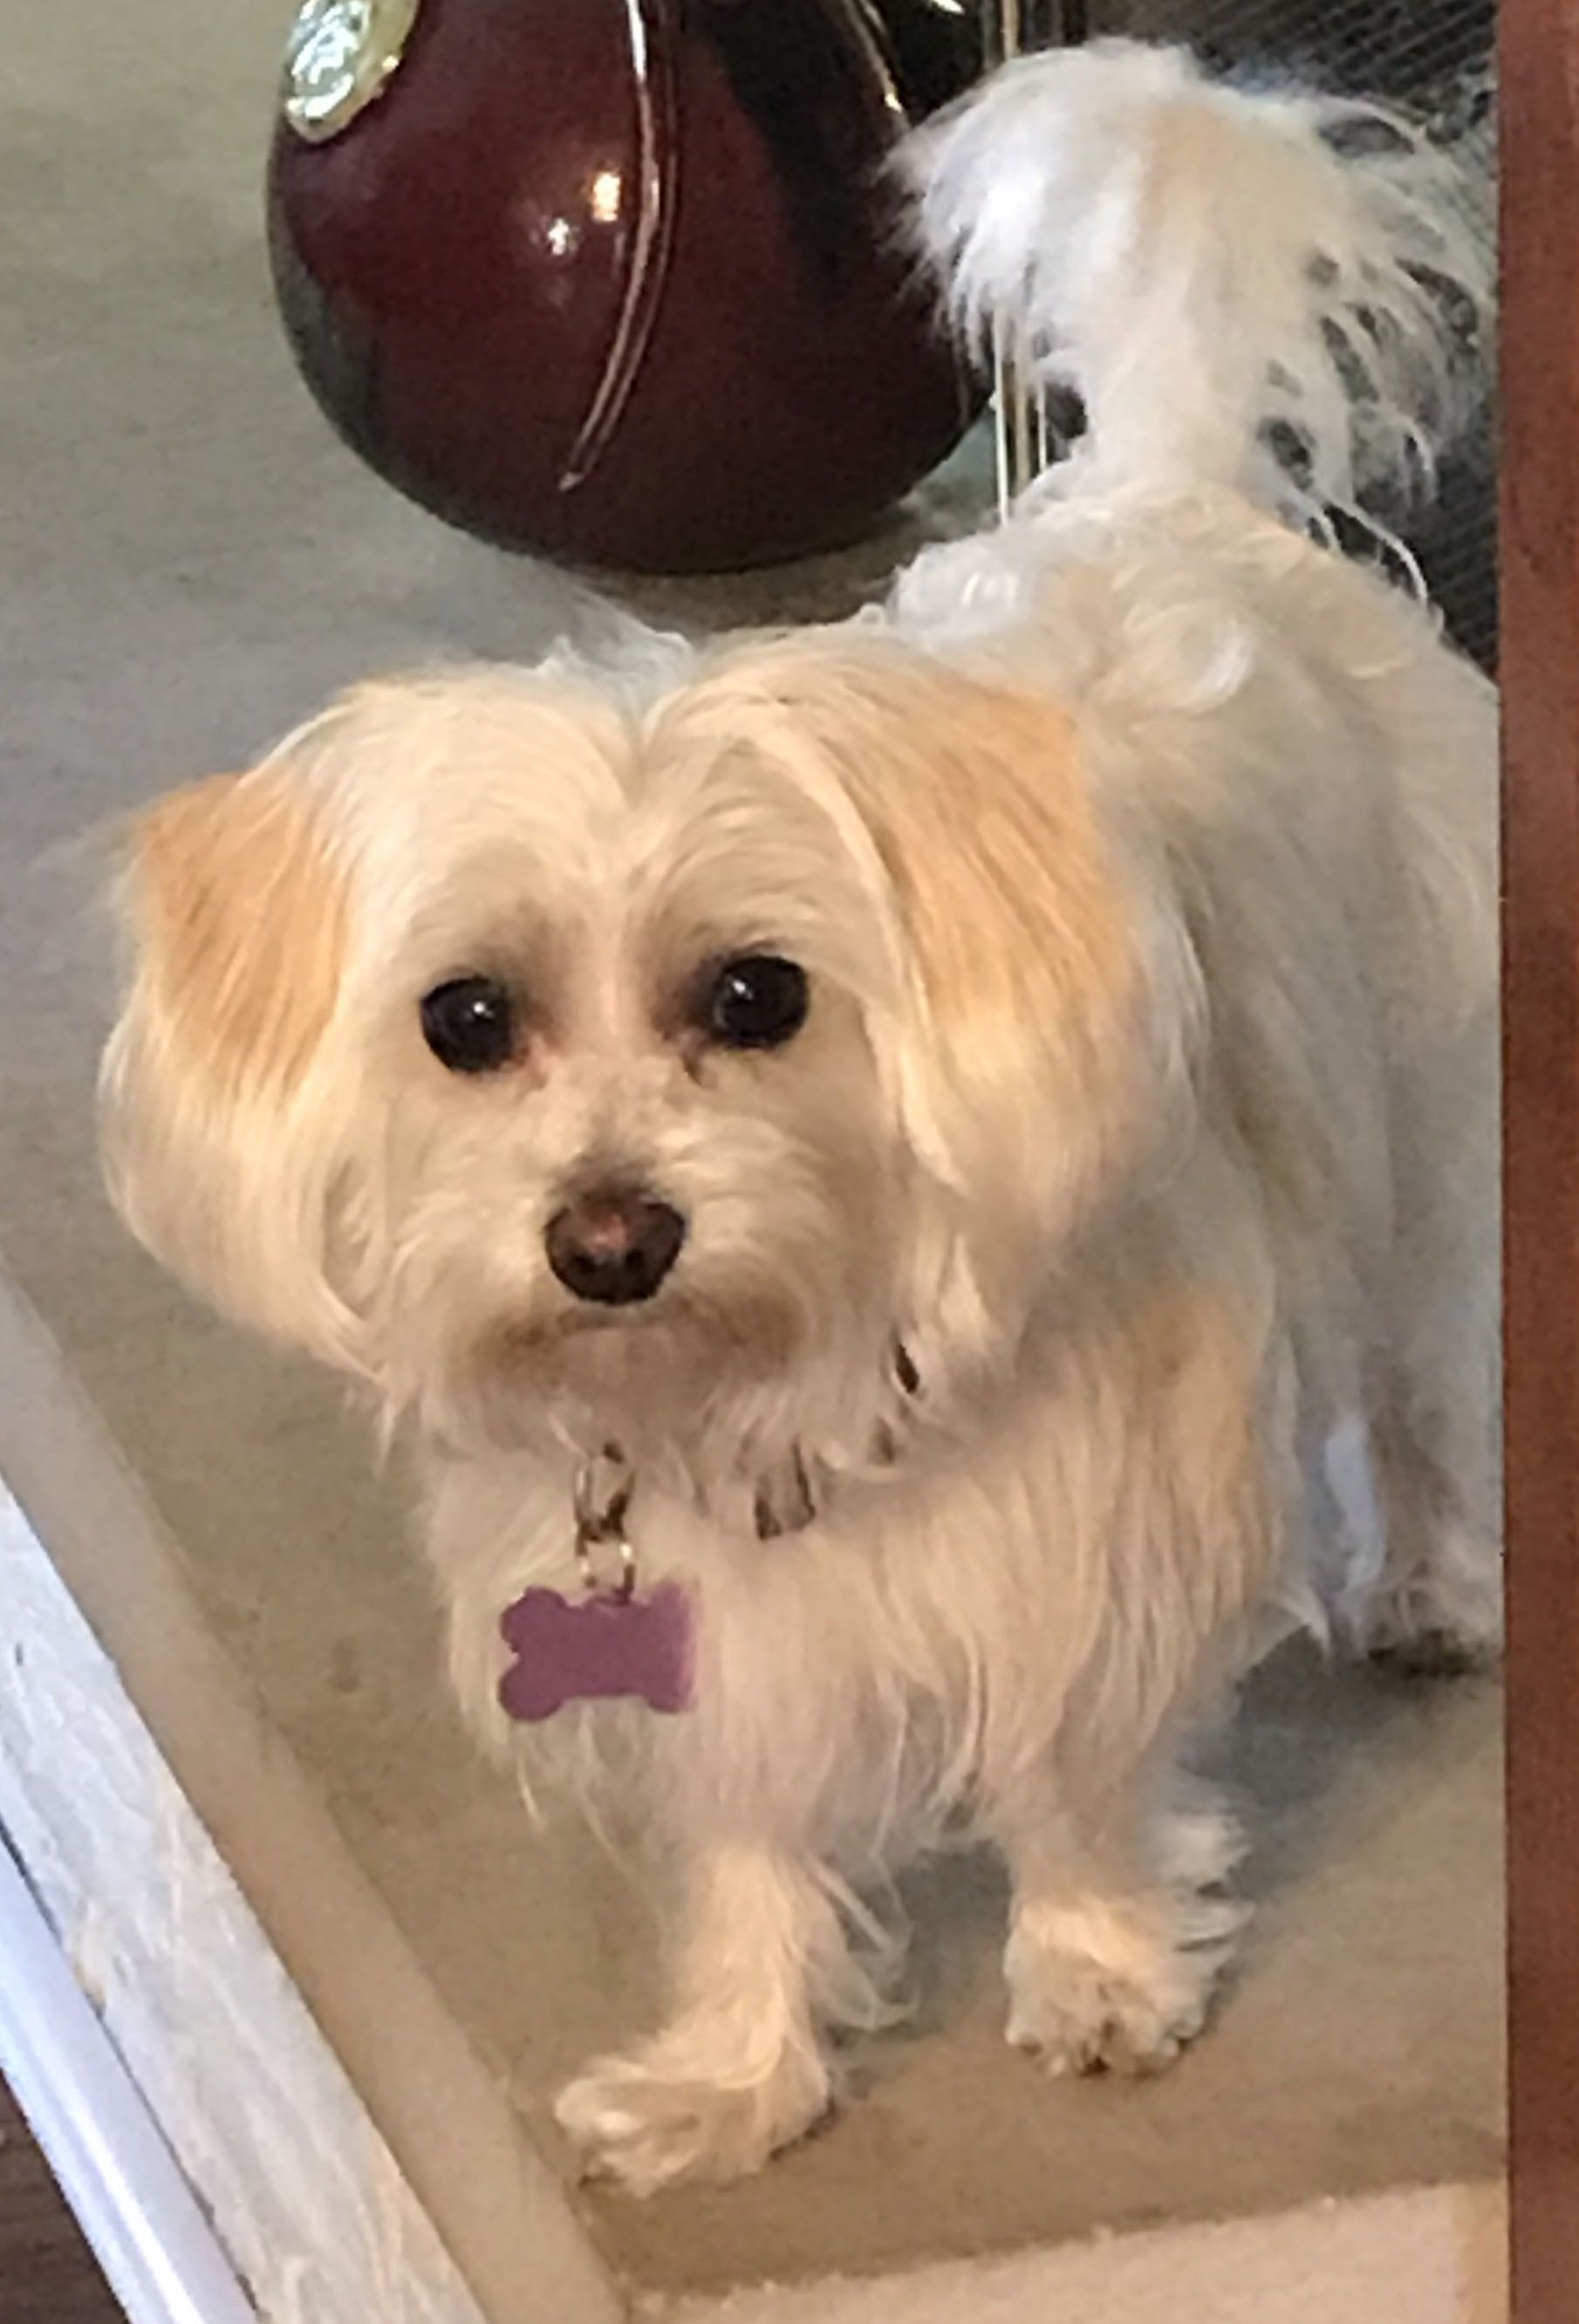 Adopt DREAM in ILLINOIS on Poodle mix dogs, Maltese dogs